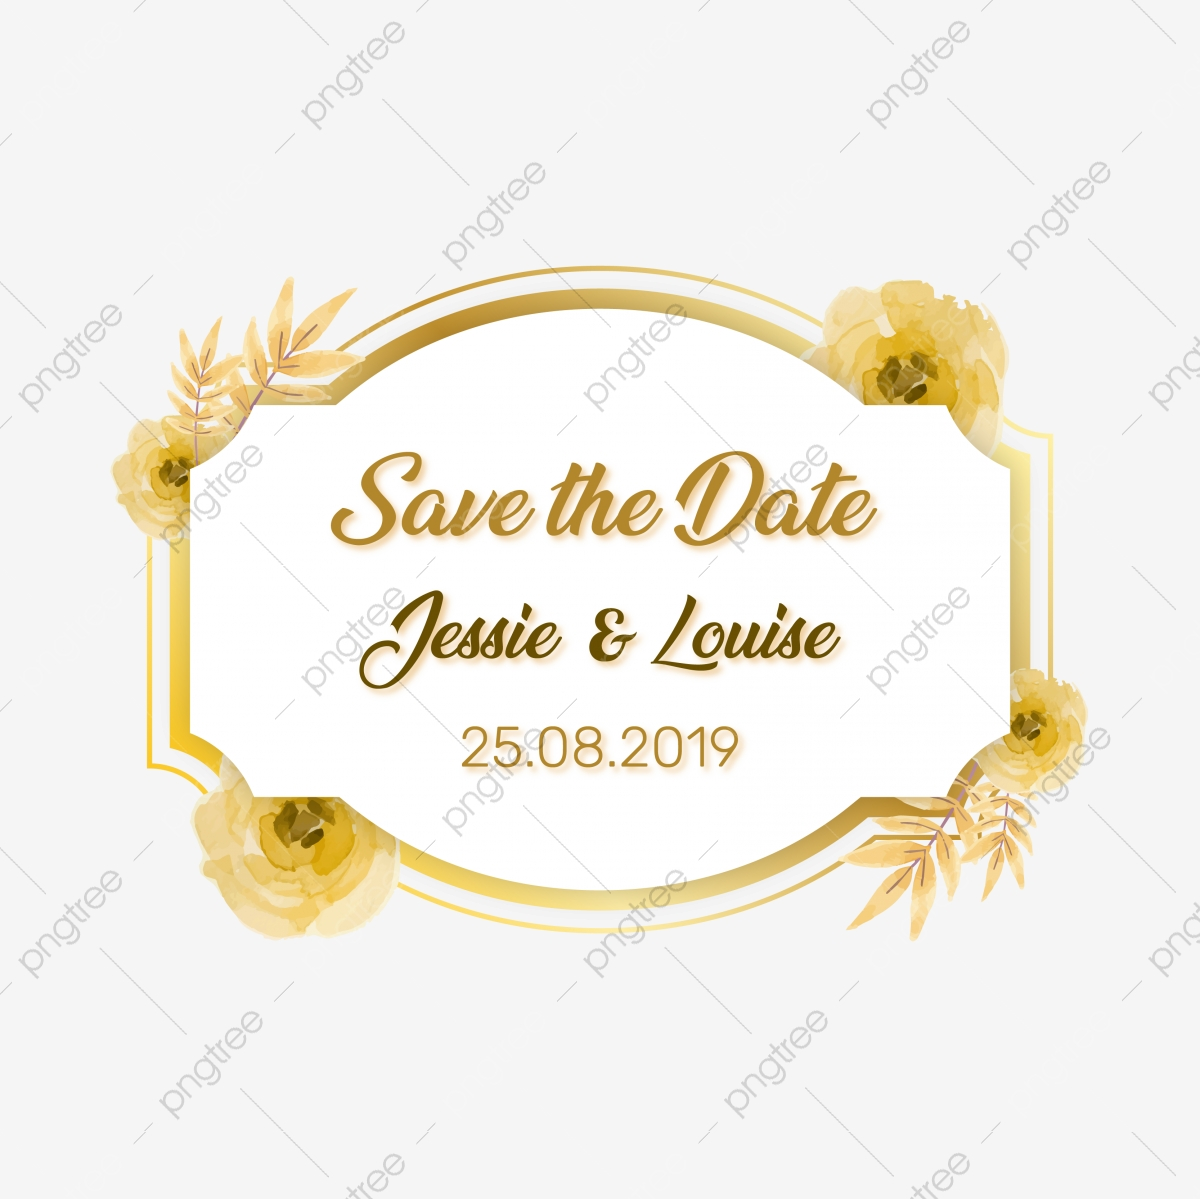 Beautiful Classic Save The Date Wedding Invitation Vector Beauty Line Art Png And Vector With Transparent Background For Free Download